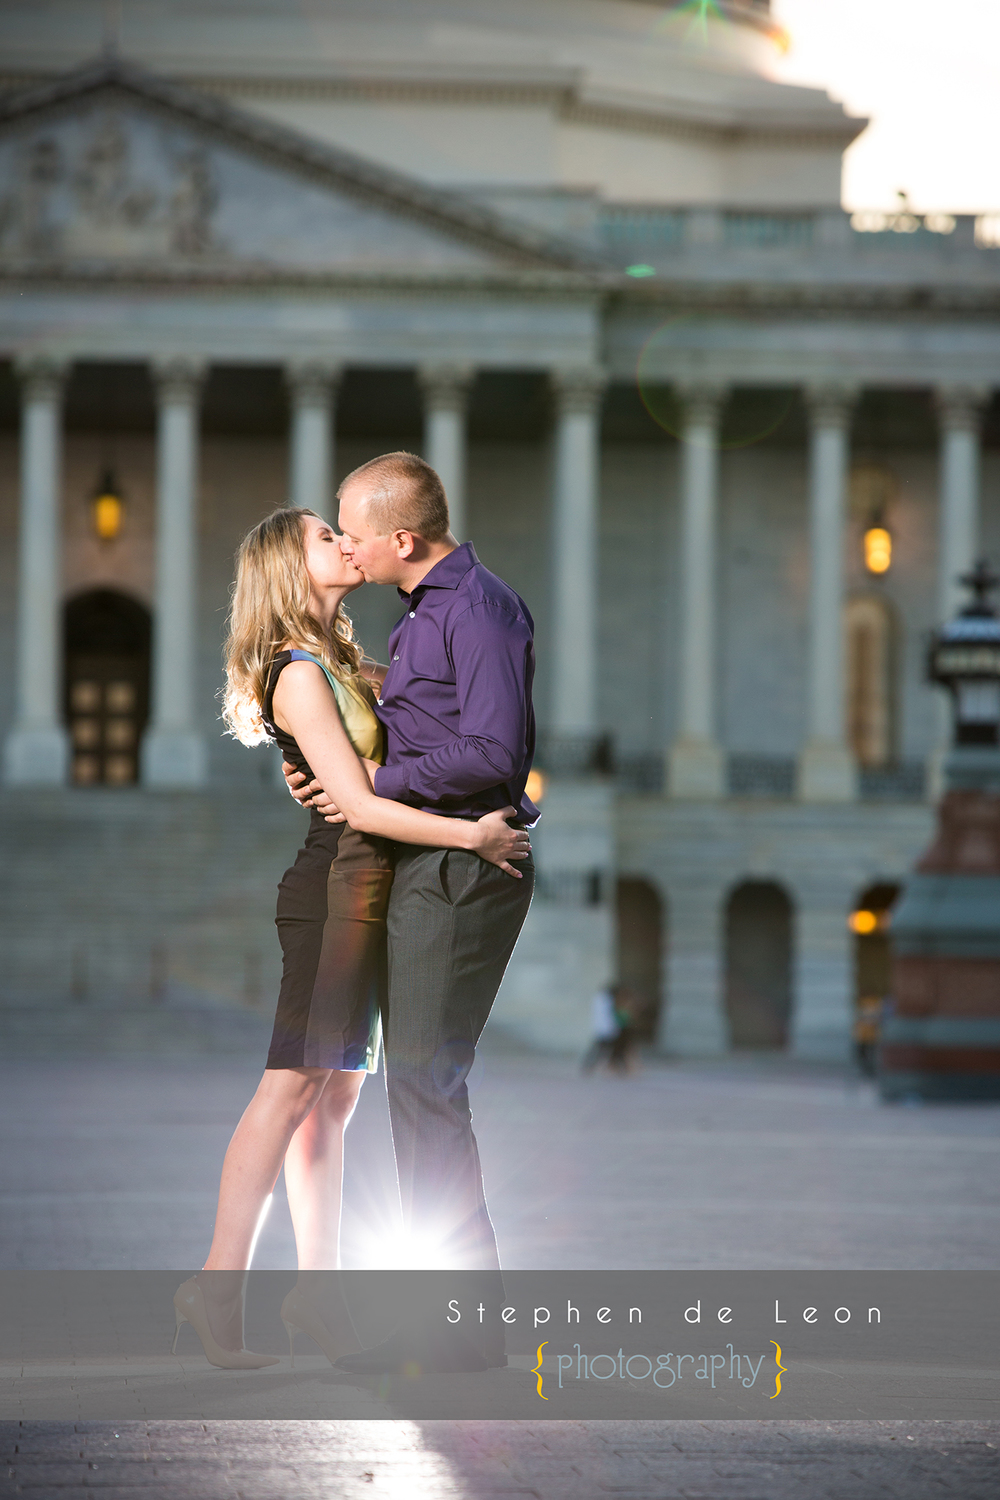 Stephen_de_Leon_Capitol_Engagement_Photography17.jpg